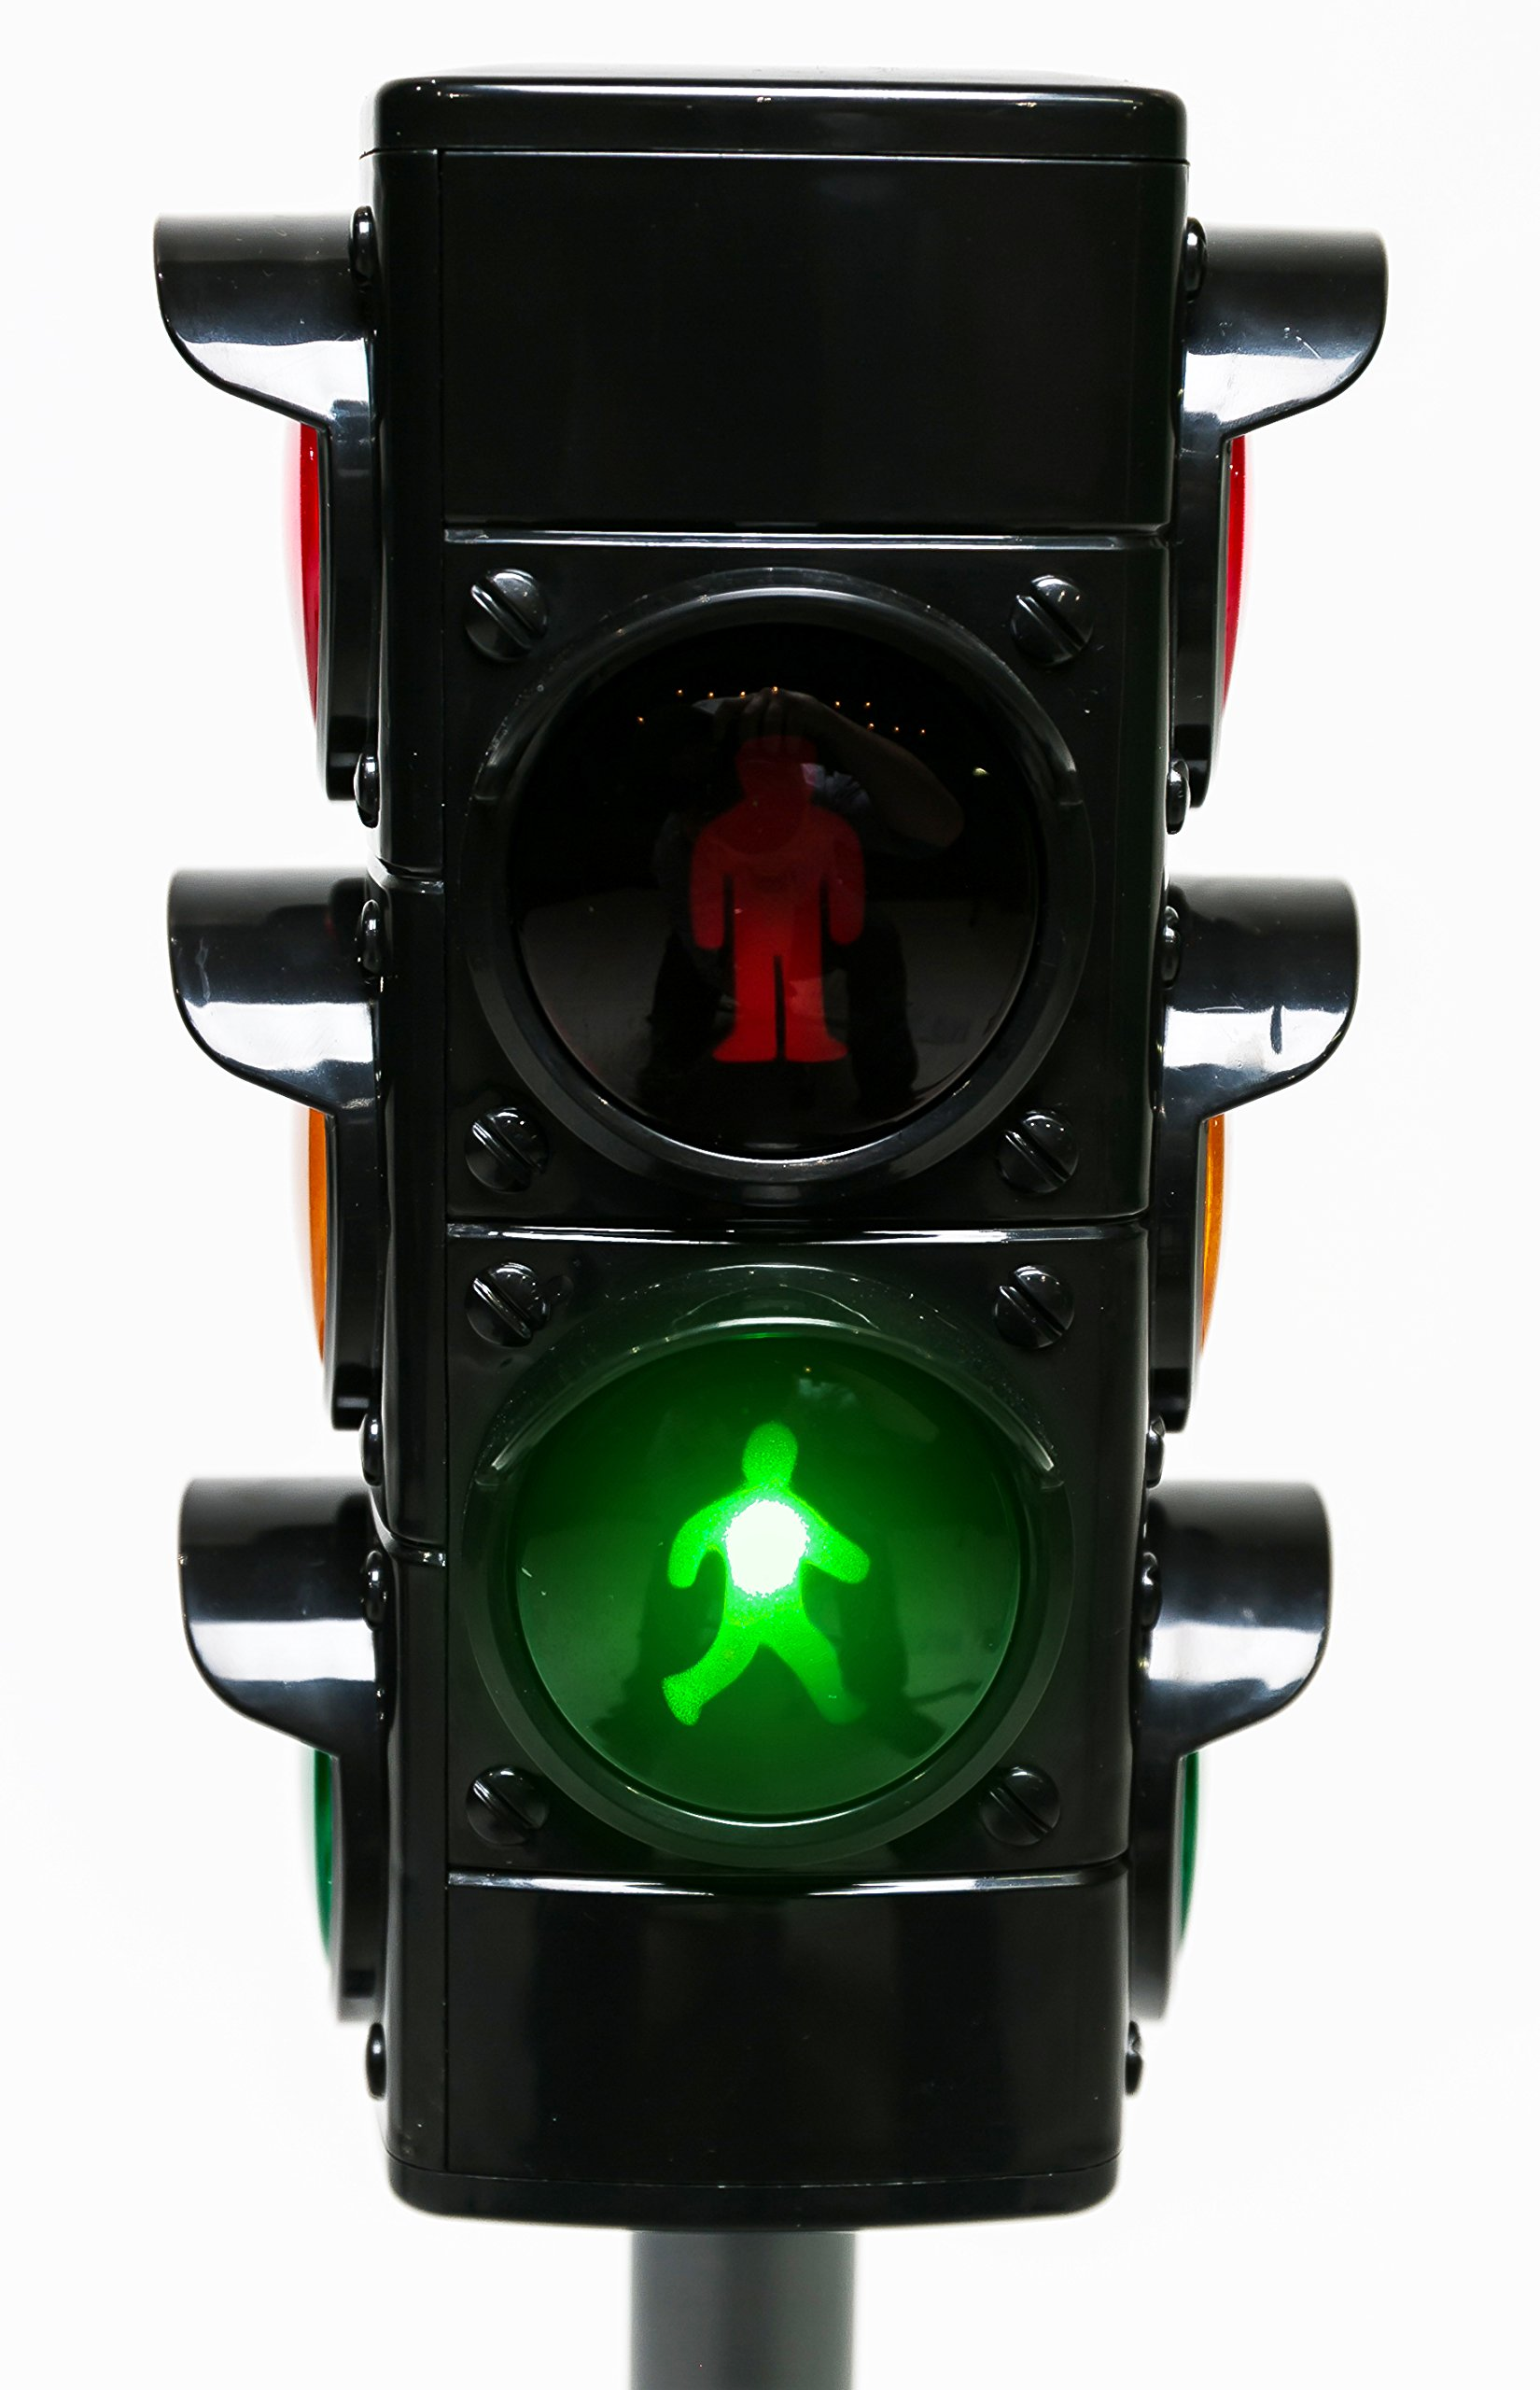 MMP Living Toy Traffic & Crosswalk Signal with Light & Sound - 4 Sided, Over 2 feet Tall by MMP Living (Image #5)